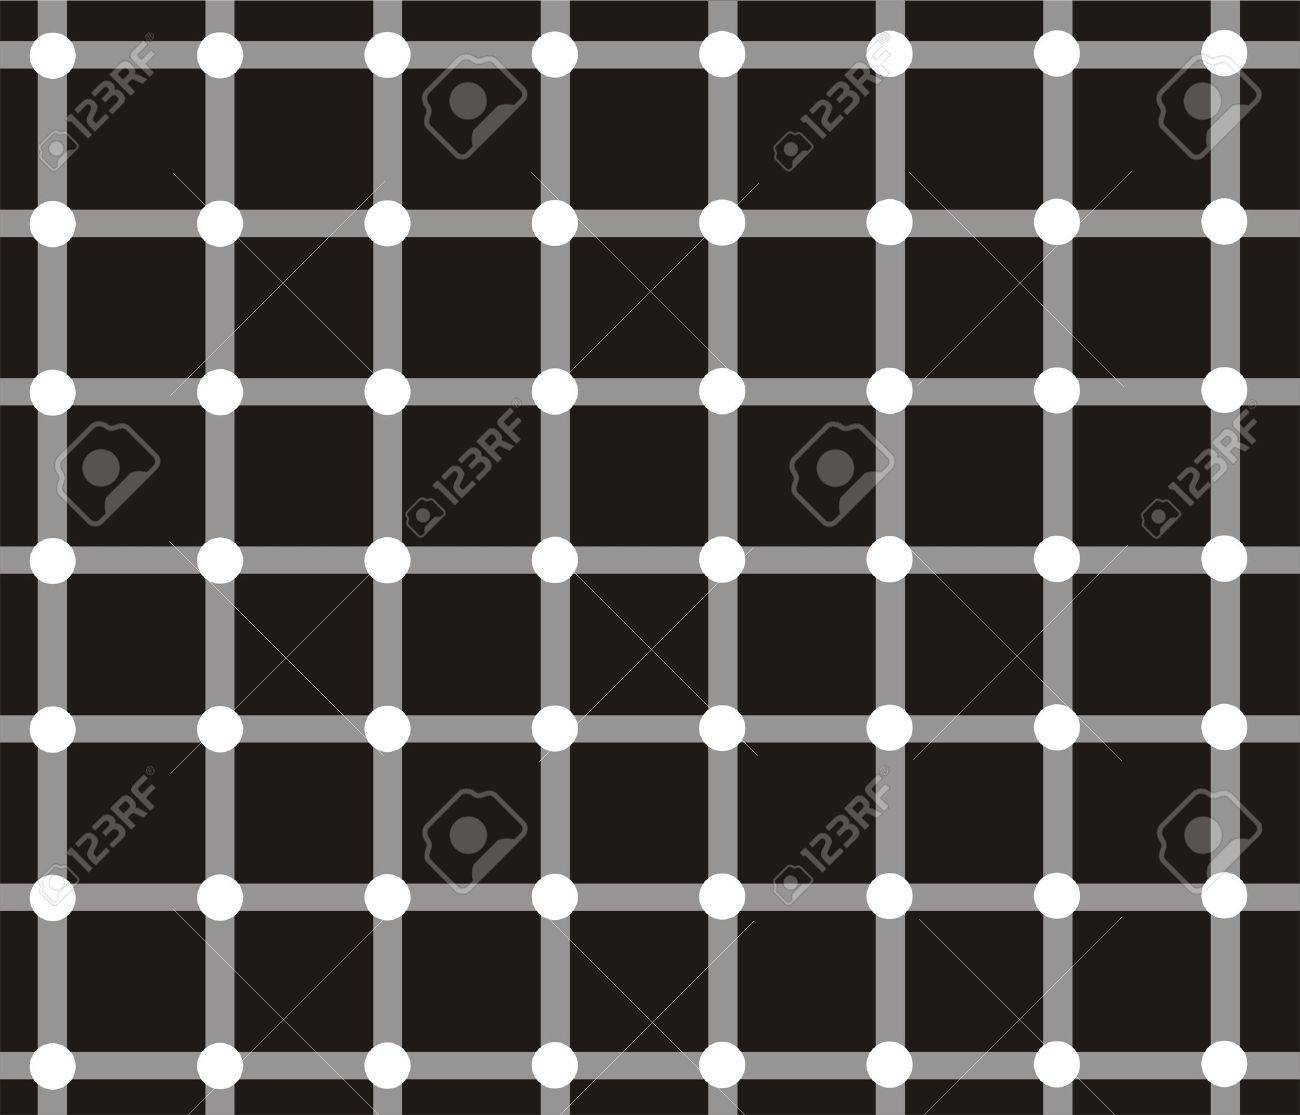 Dark spots seem to appear and disappear very quickly at the intersections Stock Photo - 8194970